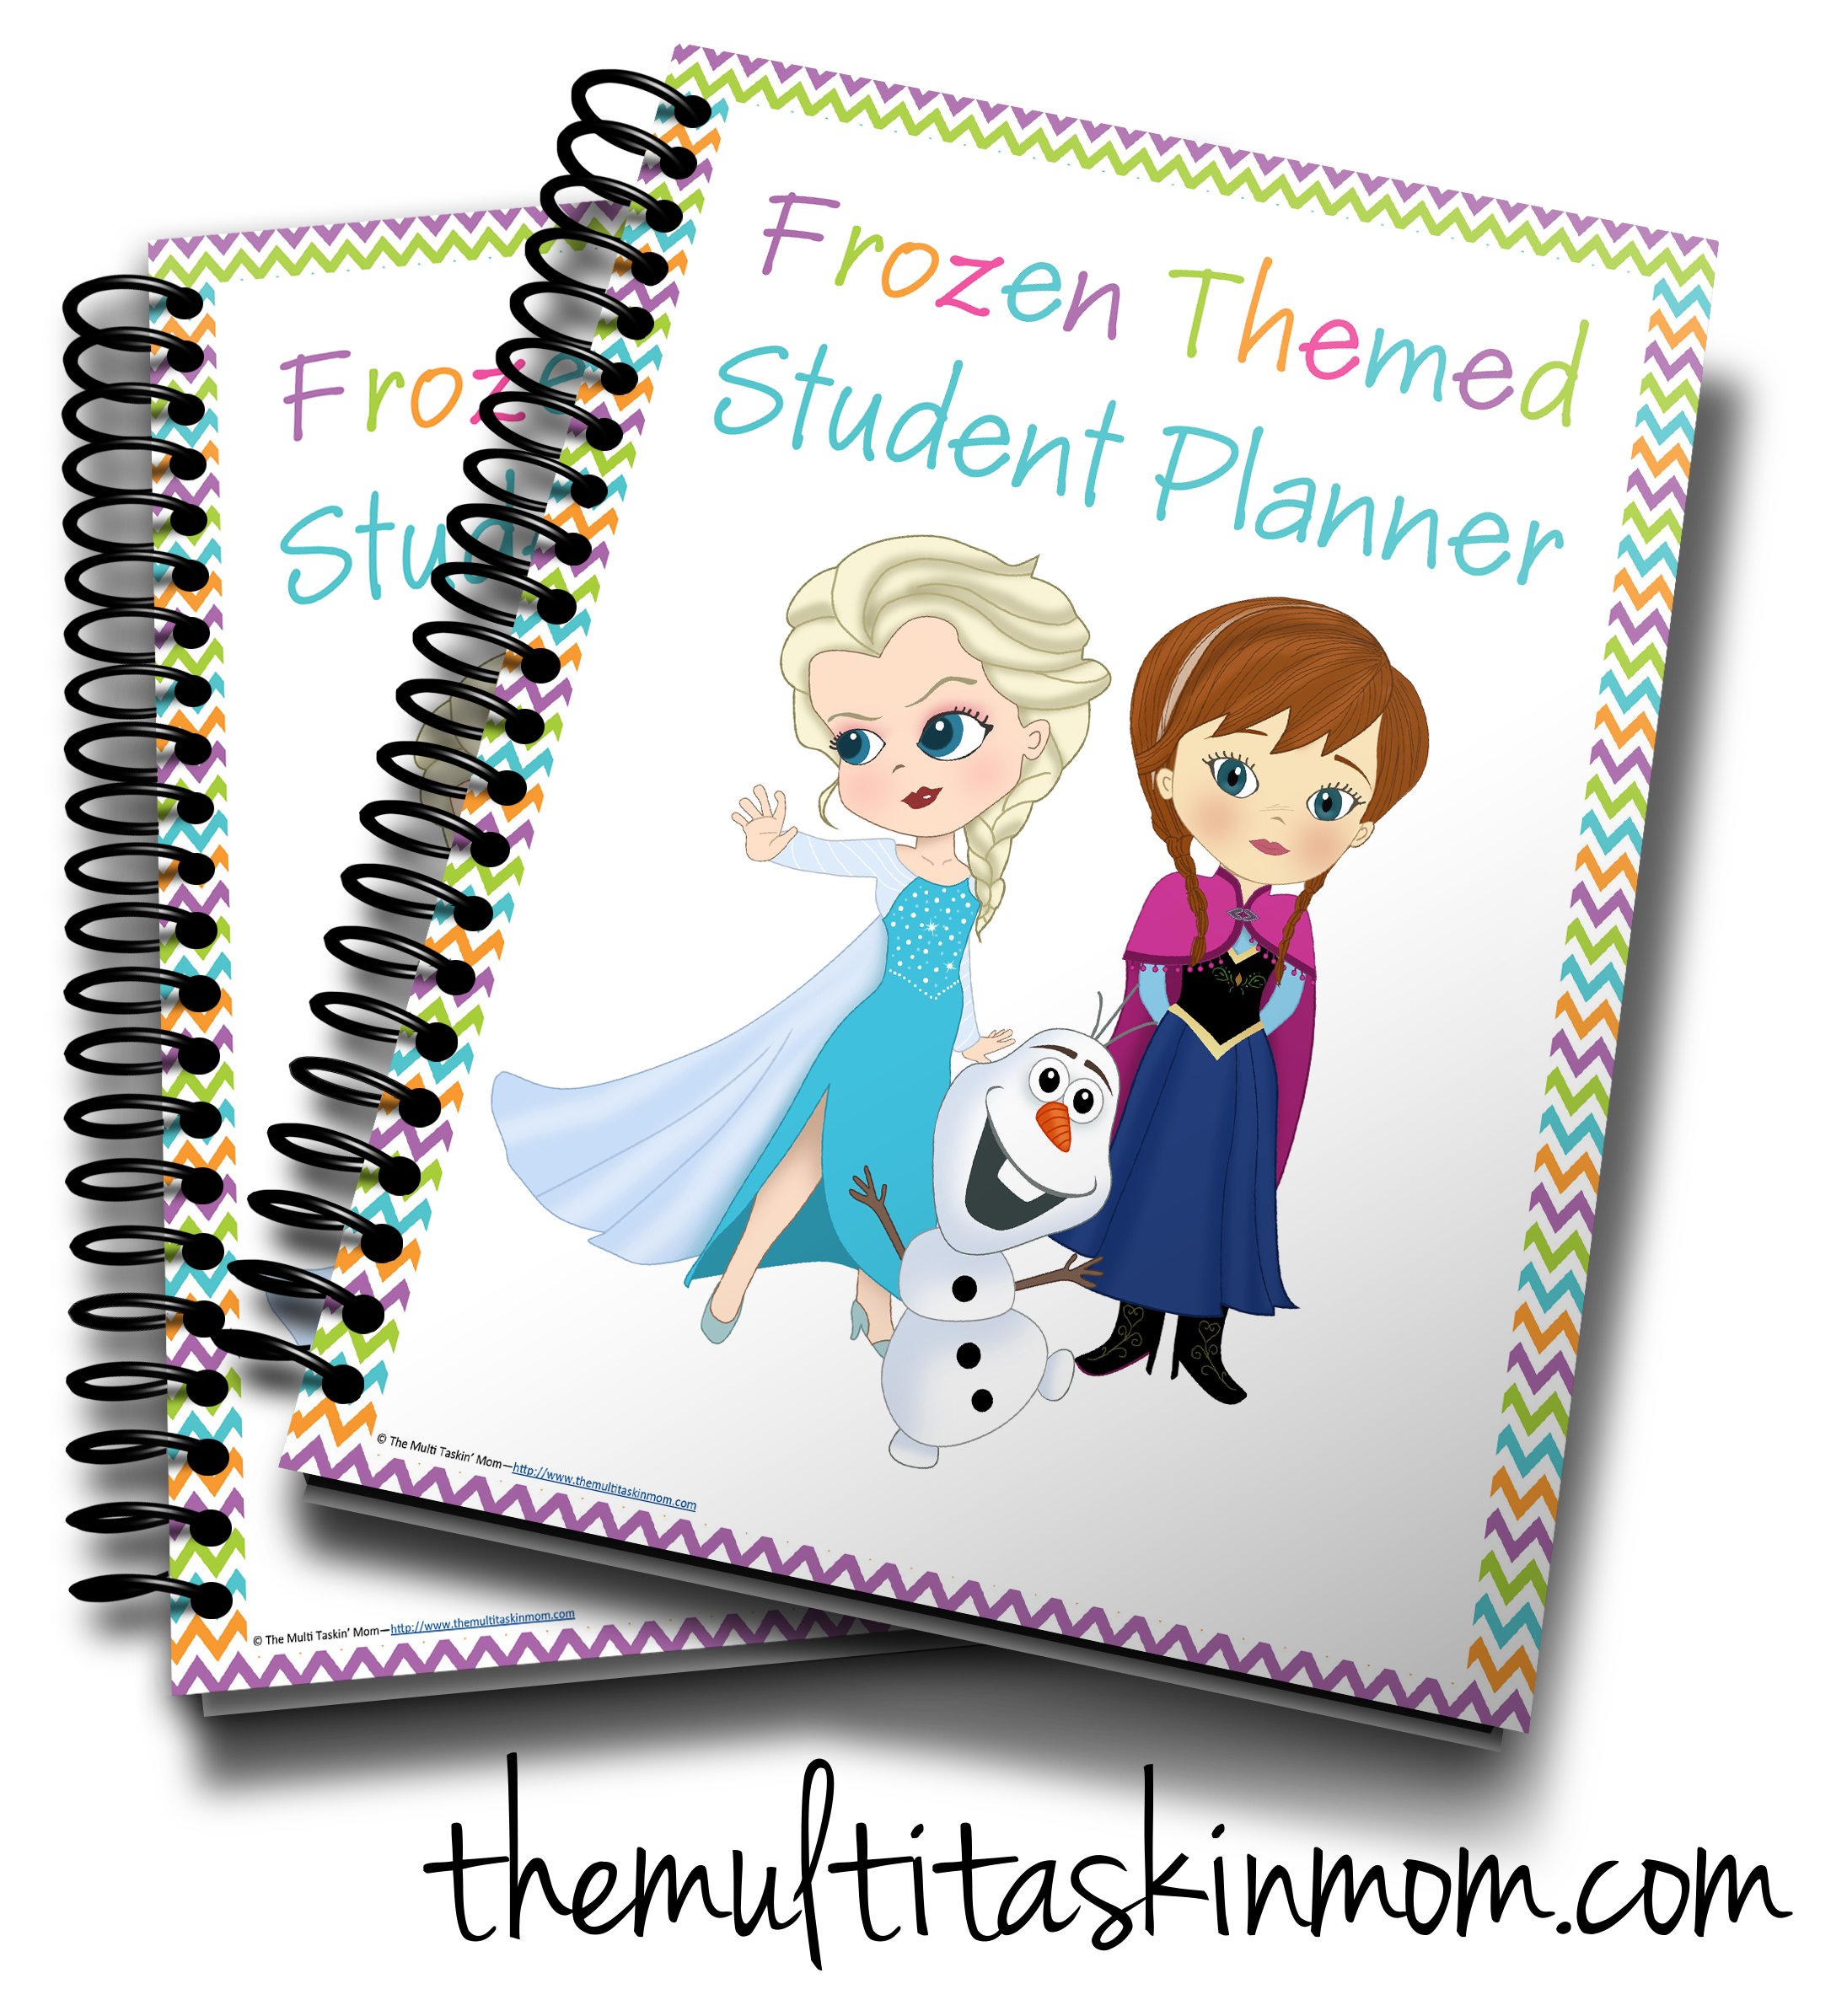 Frozen themed student planner. Clipart mom chore